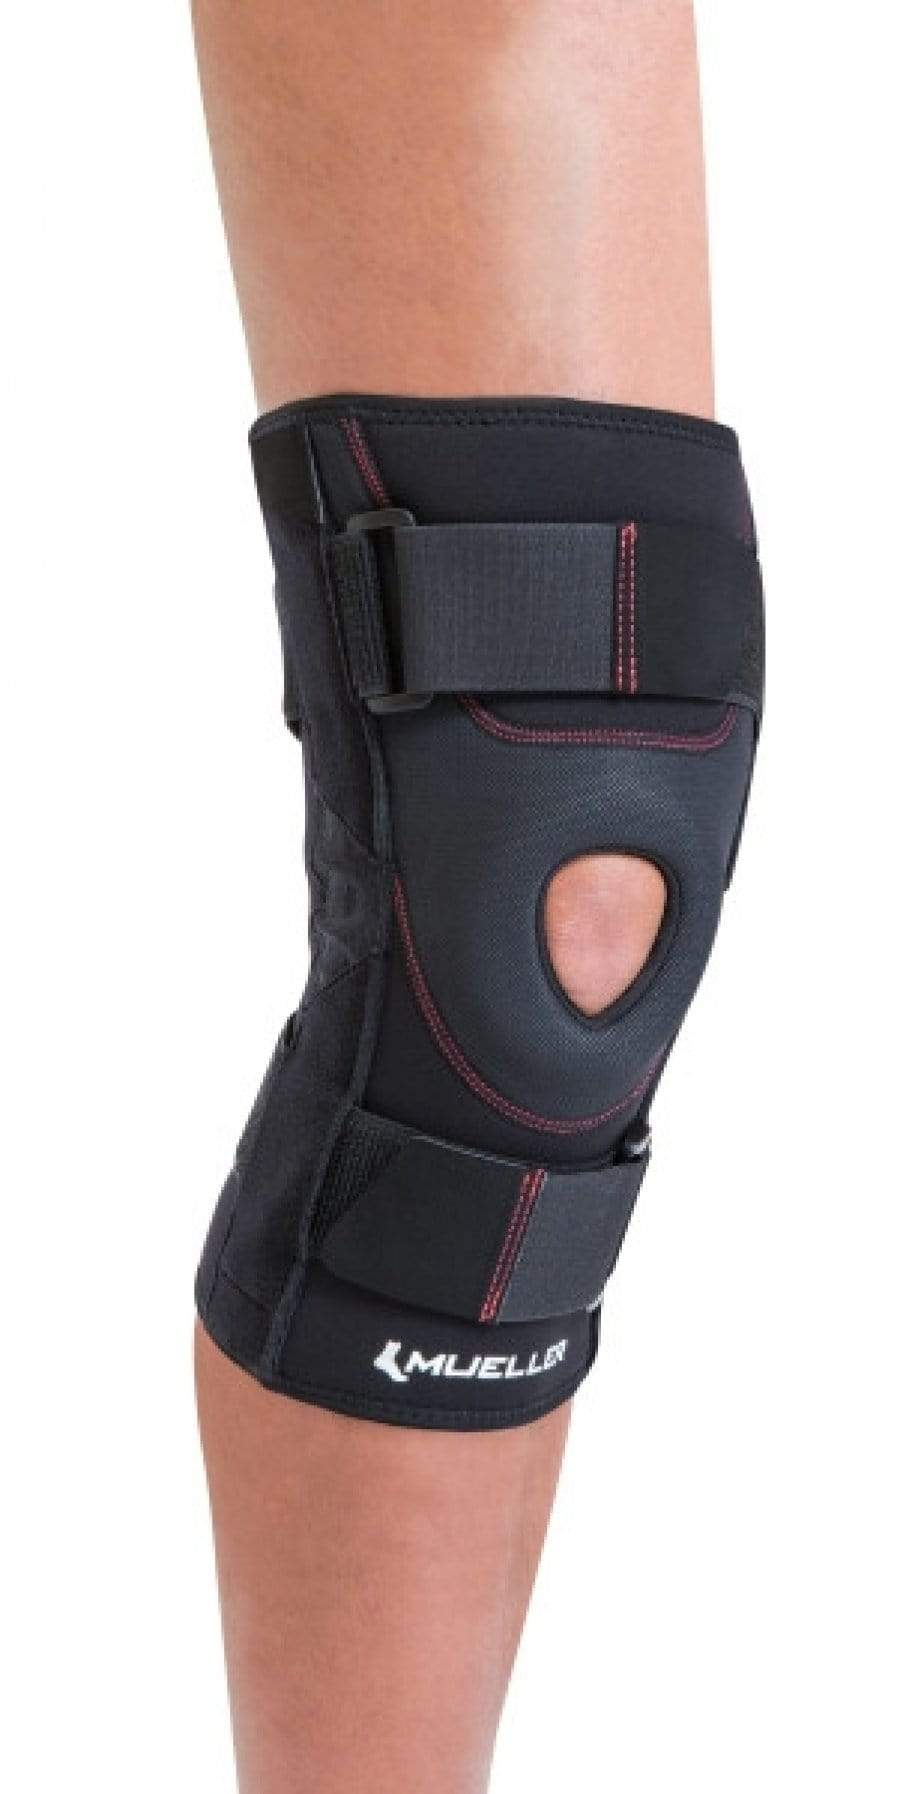 MUE5524 PREMIUM PATELLA STABILISER KNEE BRACE WITH ANATOMICALLY SHAPED BUTTRESS AND ALLOY COILED SPRINGS